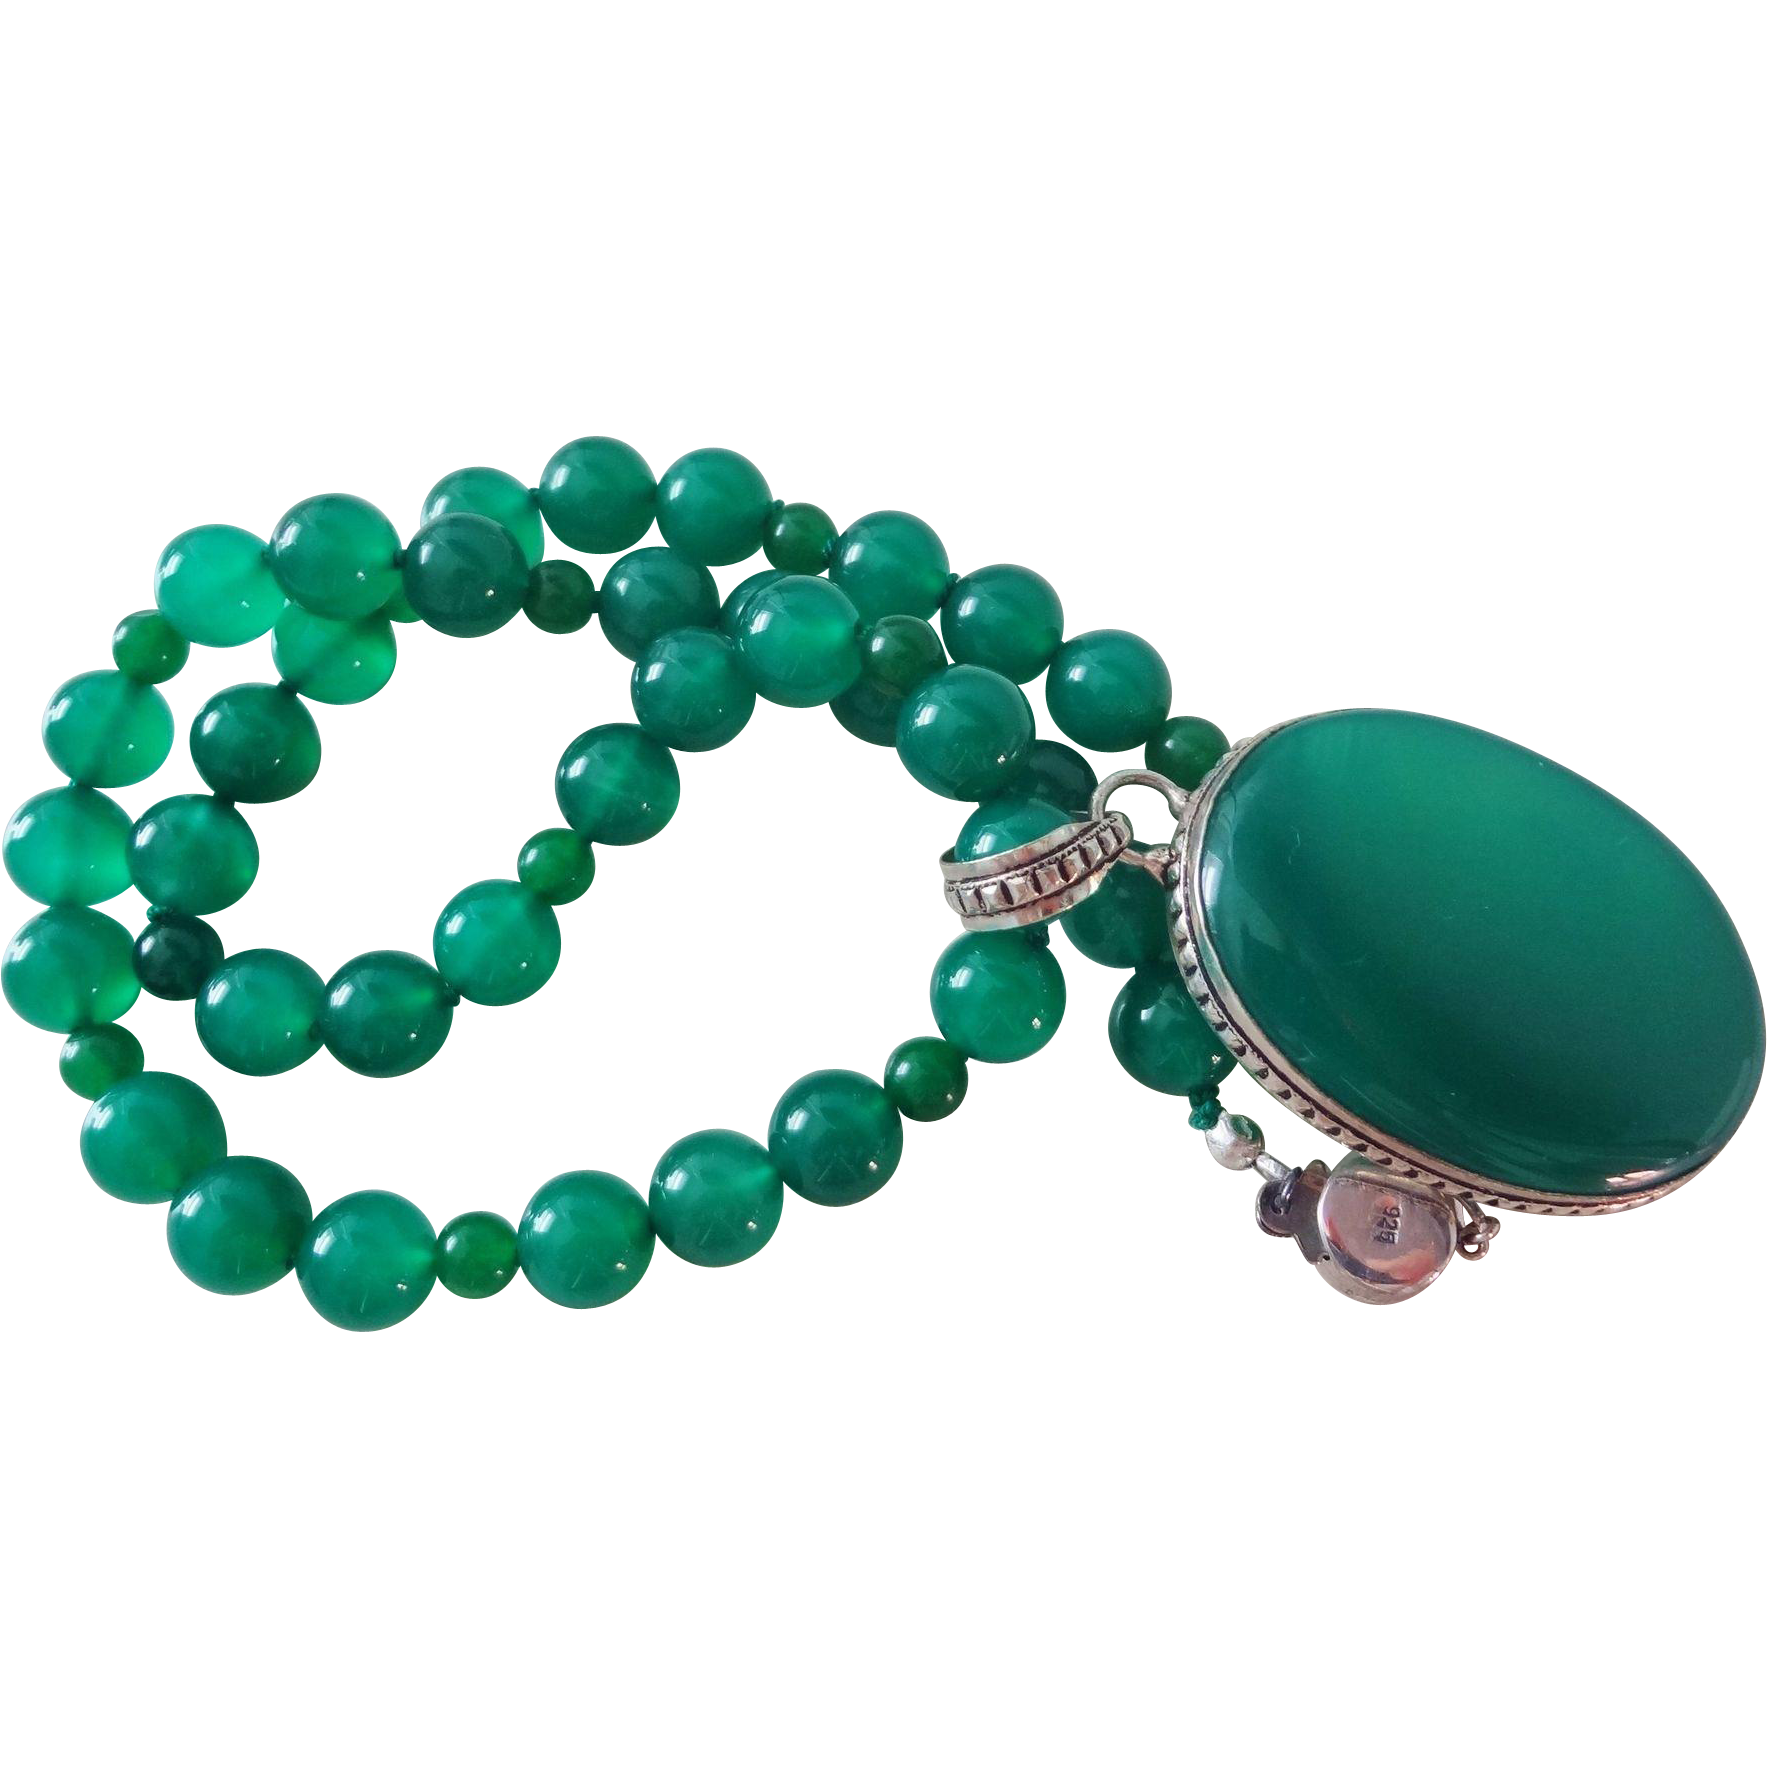 christina fbrt pendant necklace debs khk products shop letternoon with diamonds chrysoprase